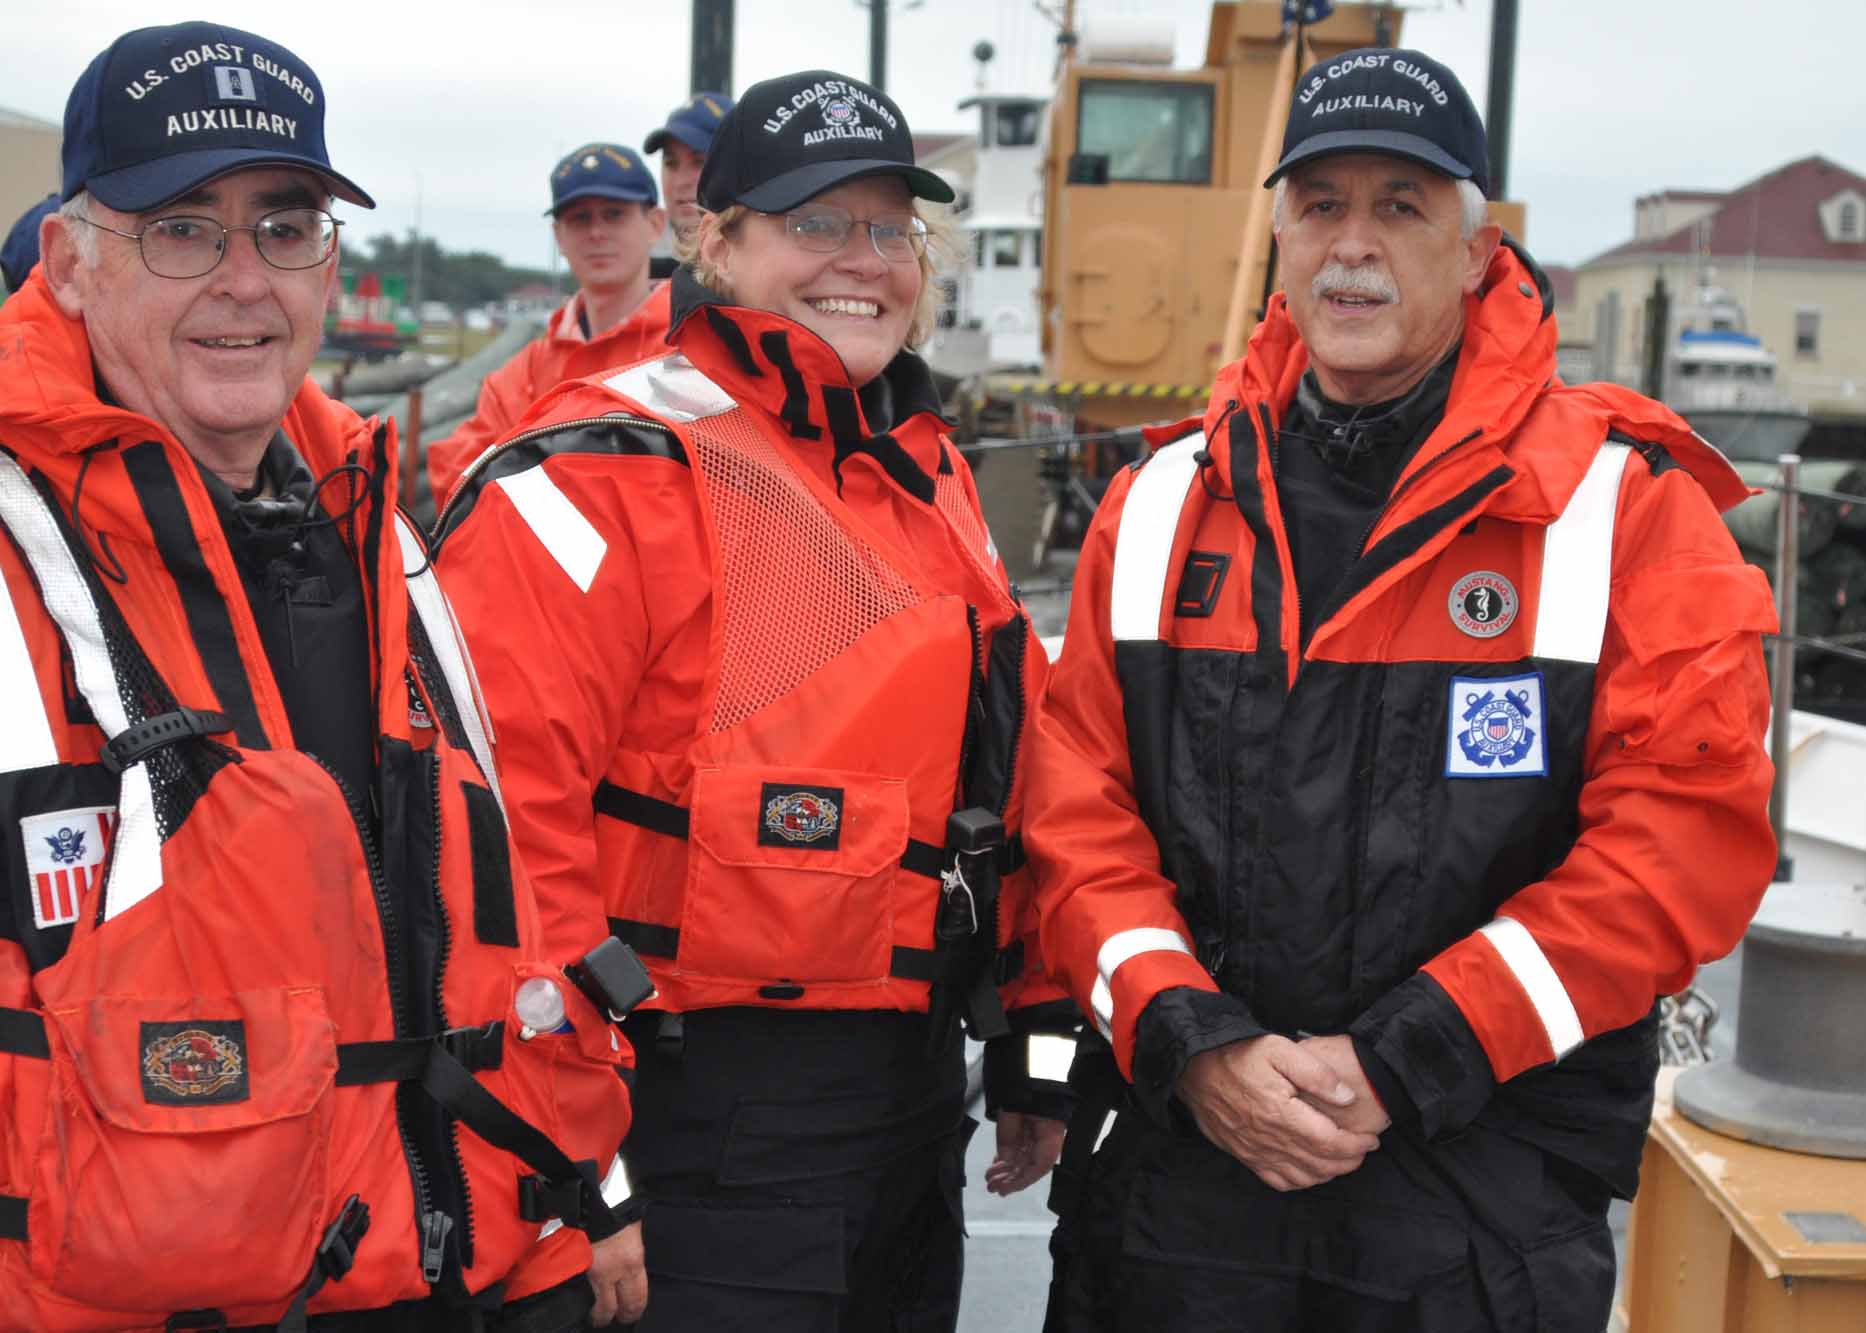 054-20-10 Auxiliarists Barbara Pohlman, Fred Jelinek & Dennis Szeba on board USCG Cutter Block Island, preparing for a Public Affairs Mission with FOXNEWS. Photo by PA3 David Weydert, USCG.